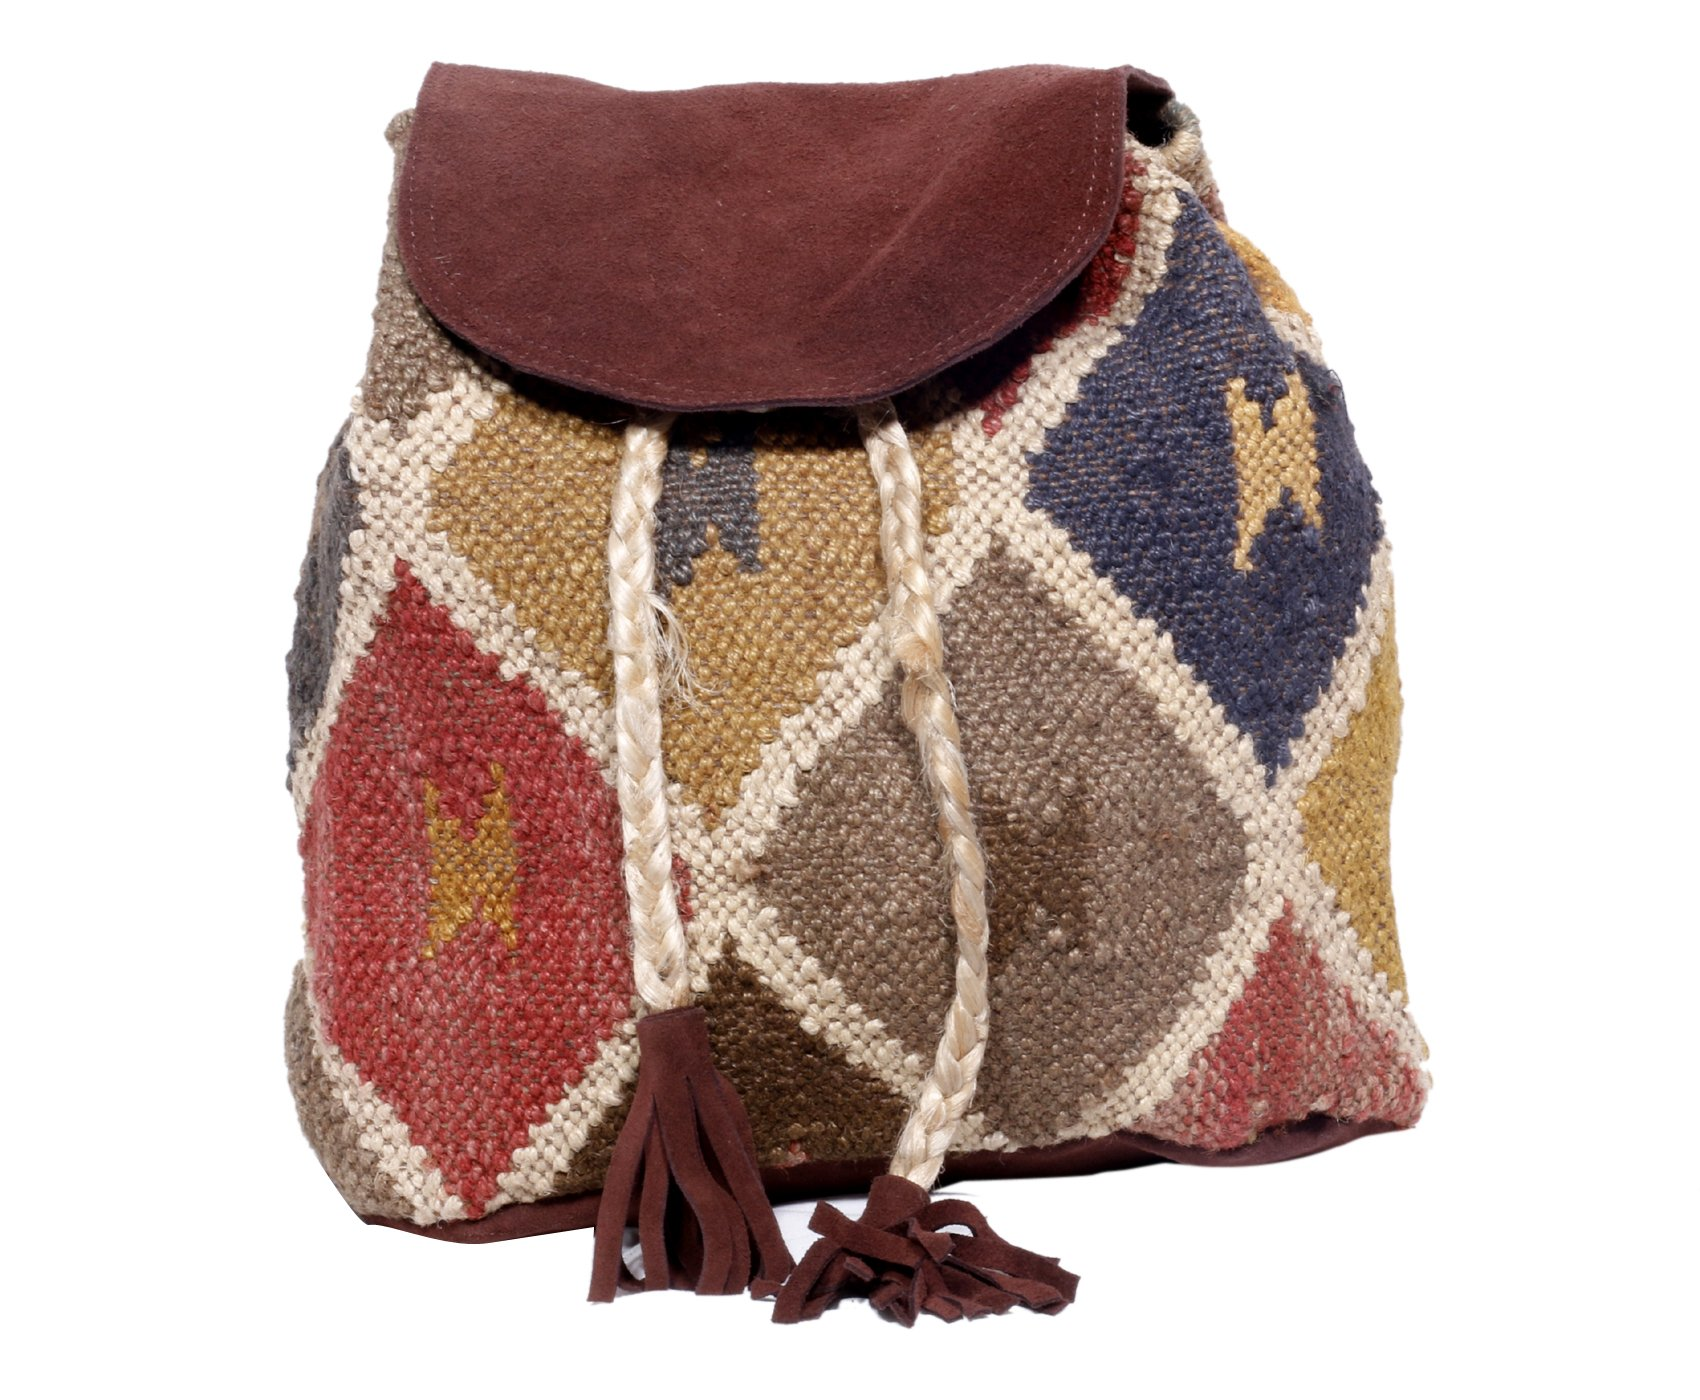 Indistar Women's Vintage Handmade Ethnic Kilim and Leather Back Pack Bag by Indistar (Image #8)